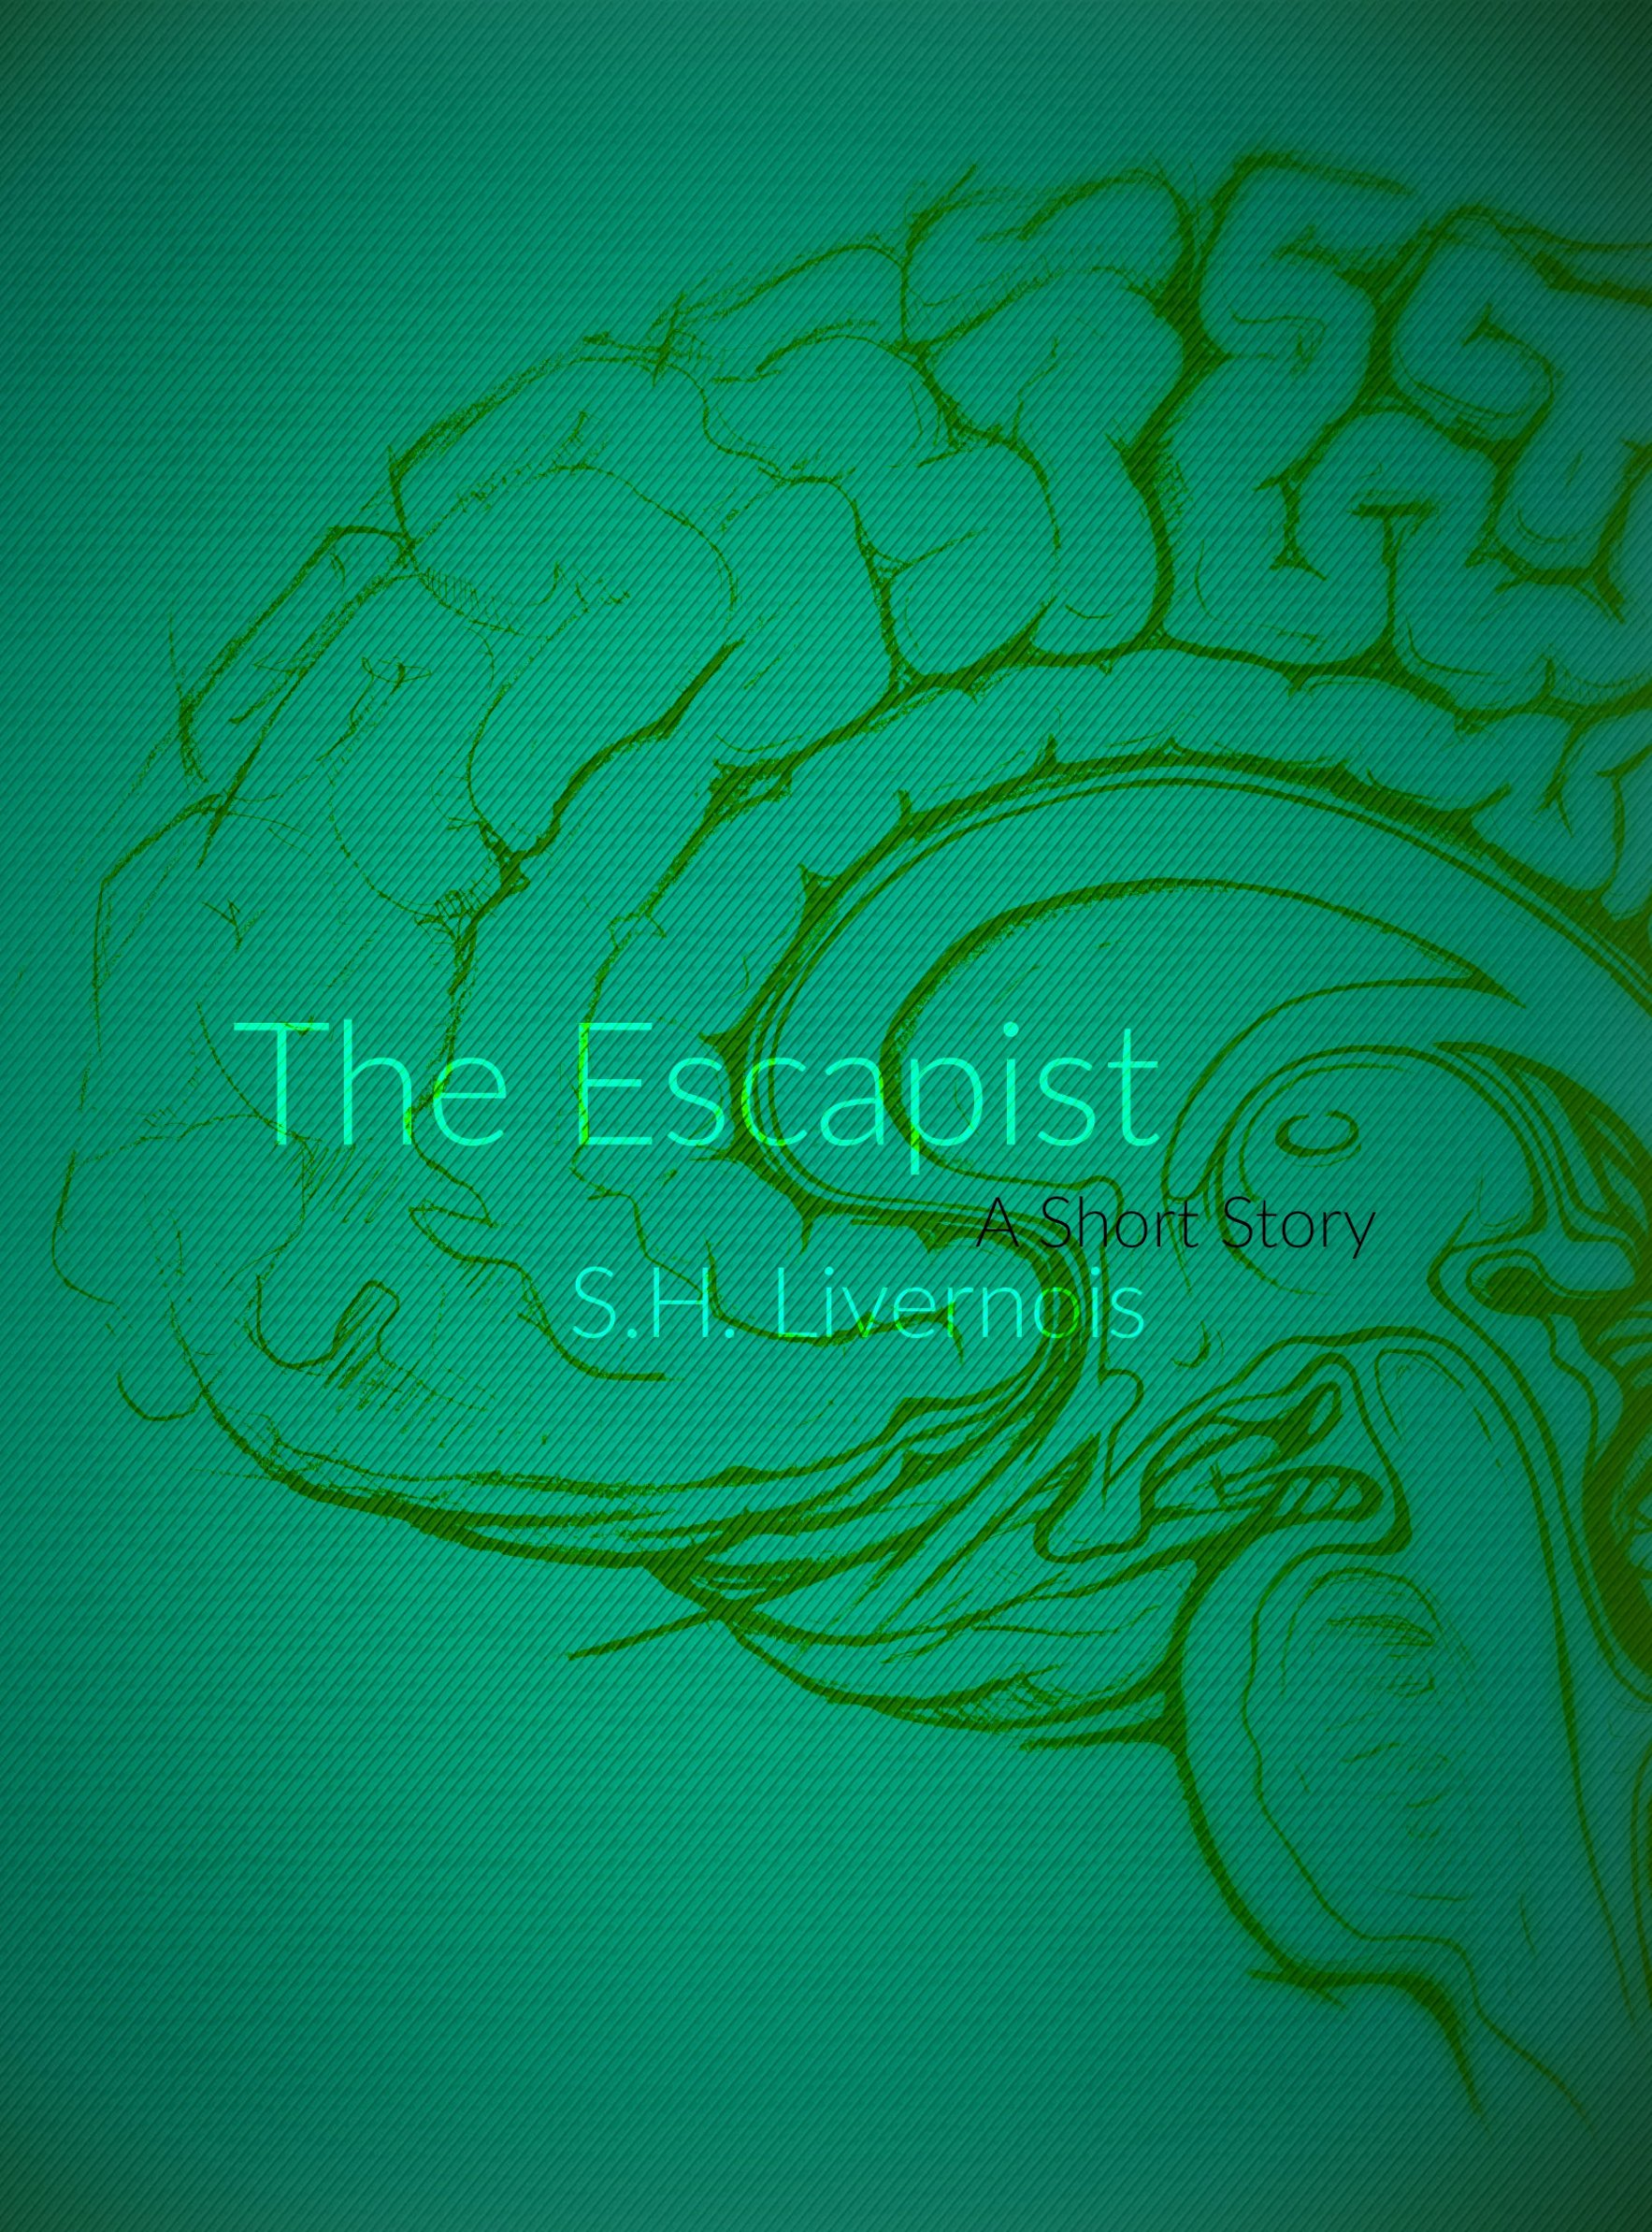 The Escapist by S.H. Livernois